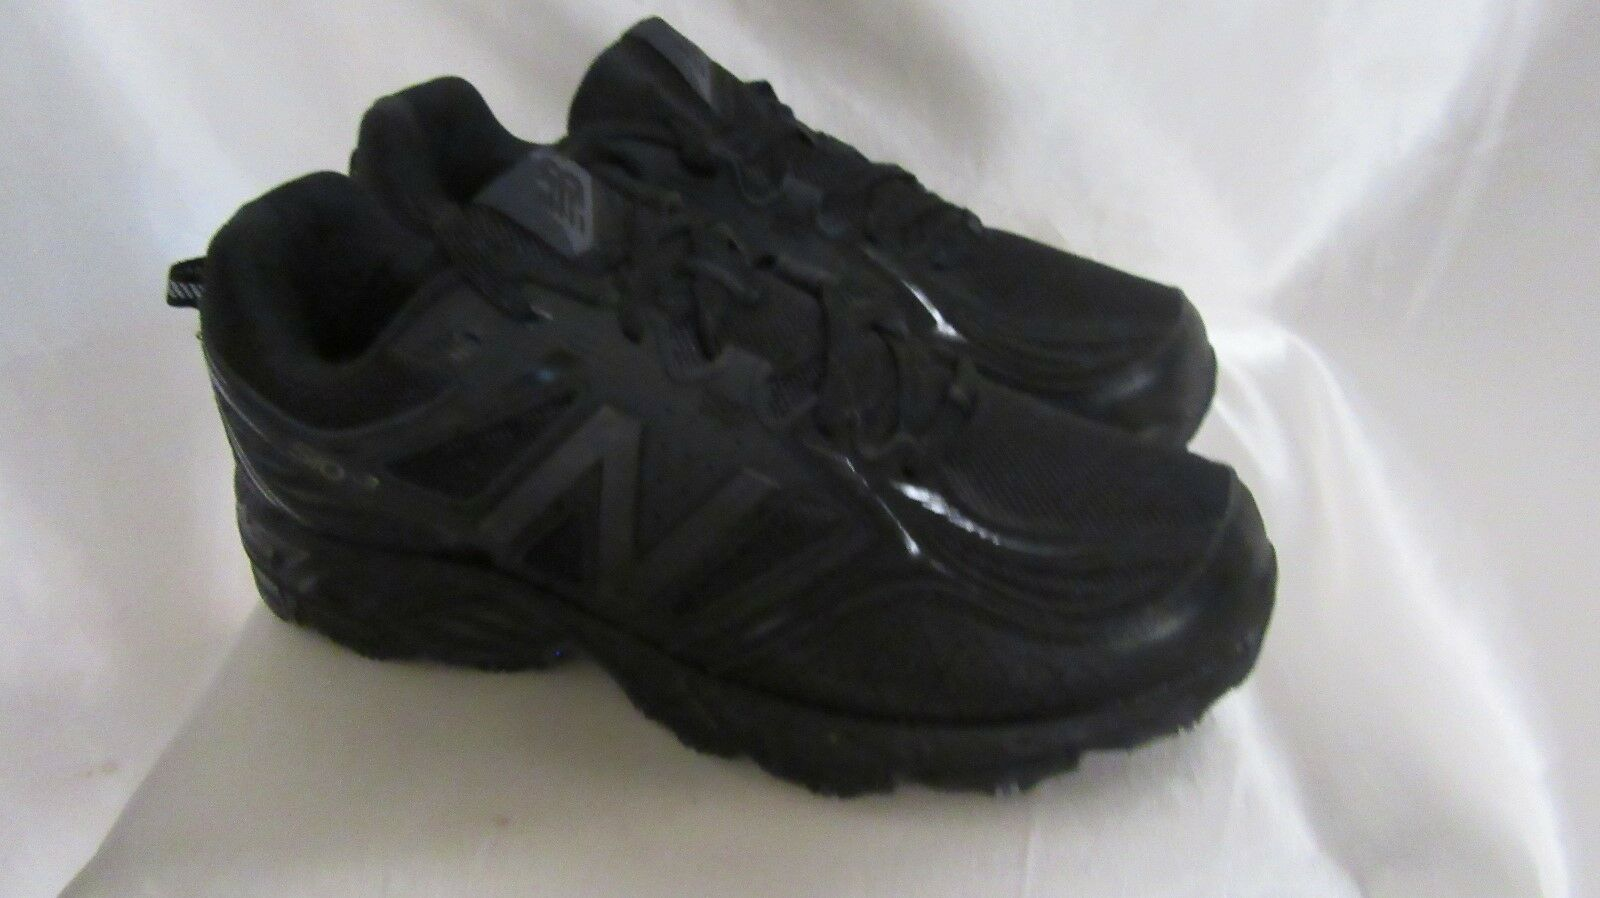 MEN`S NEW BALANCE ATHLETIC SNEAKERS SIZE 10 XWIDE (4E) NEW #MT510CB3 BLK